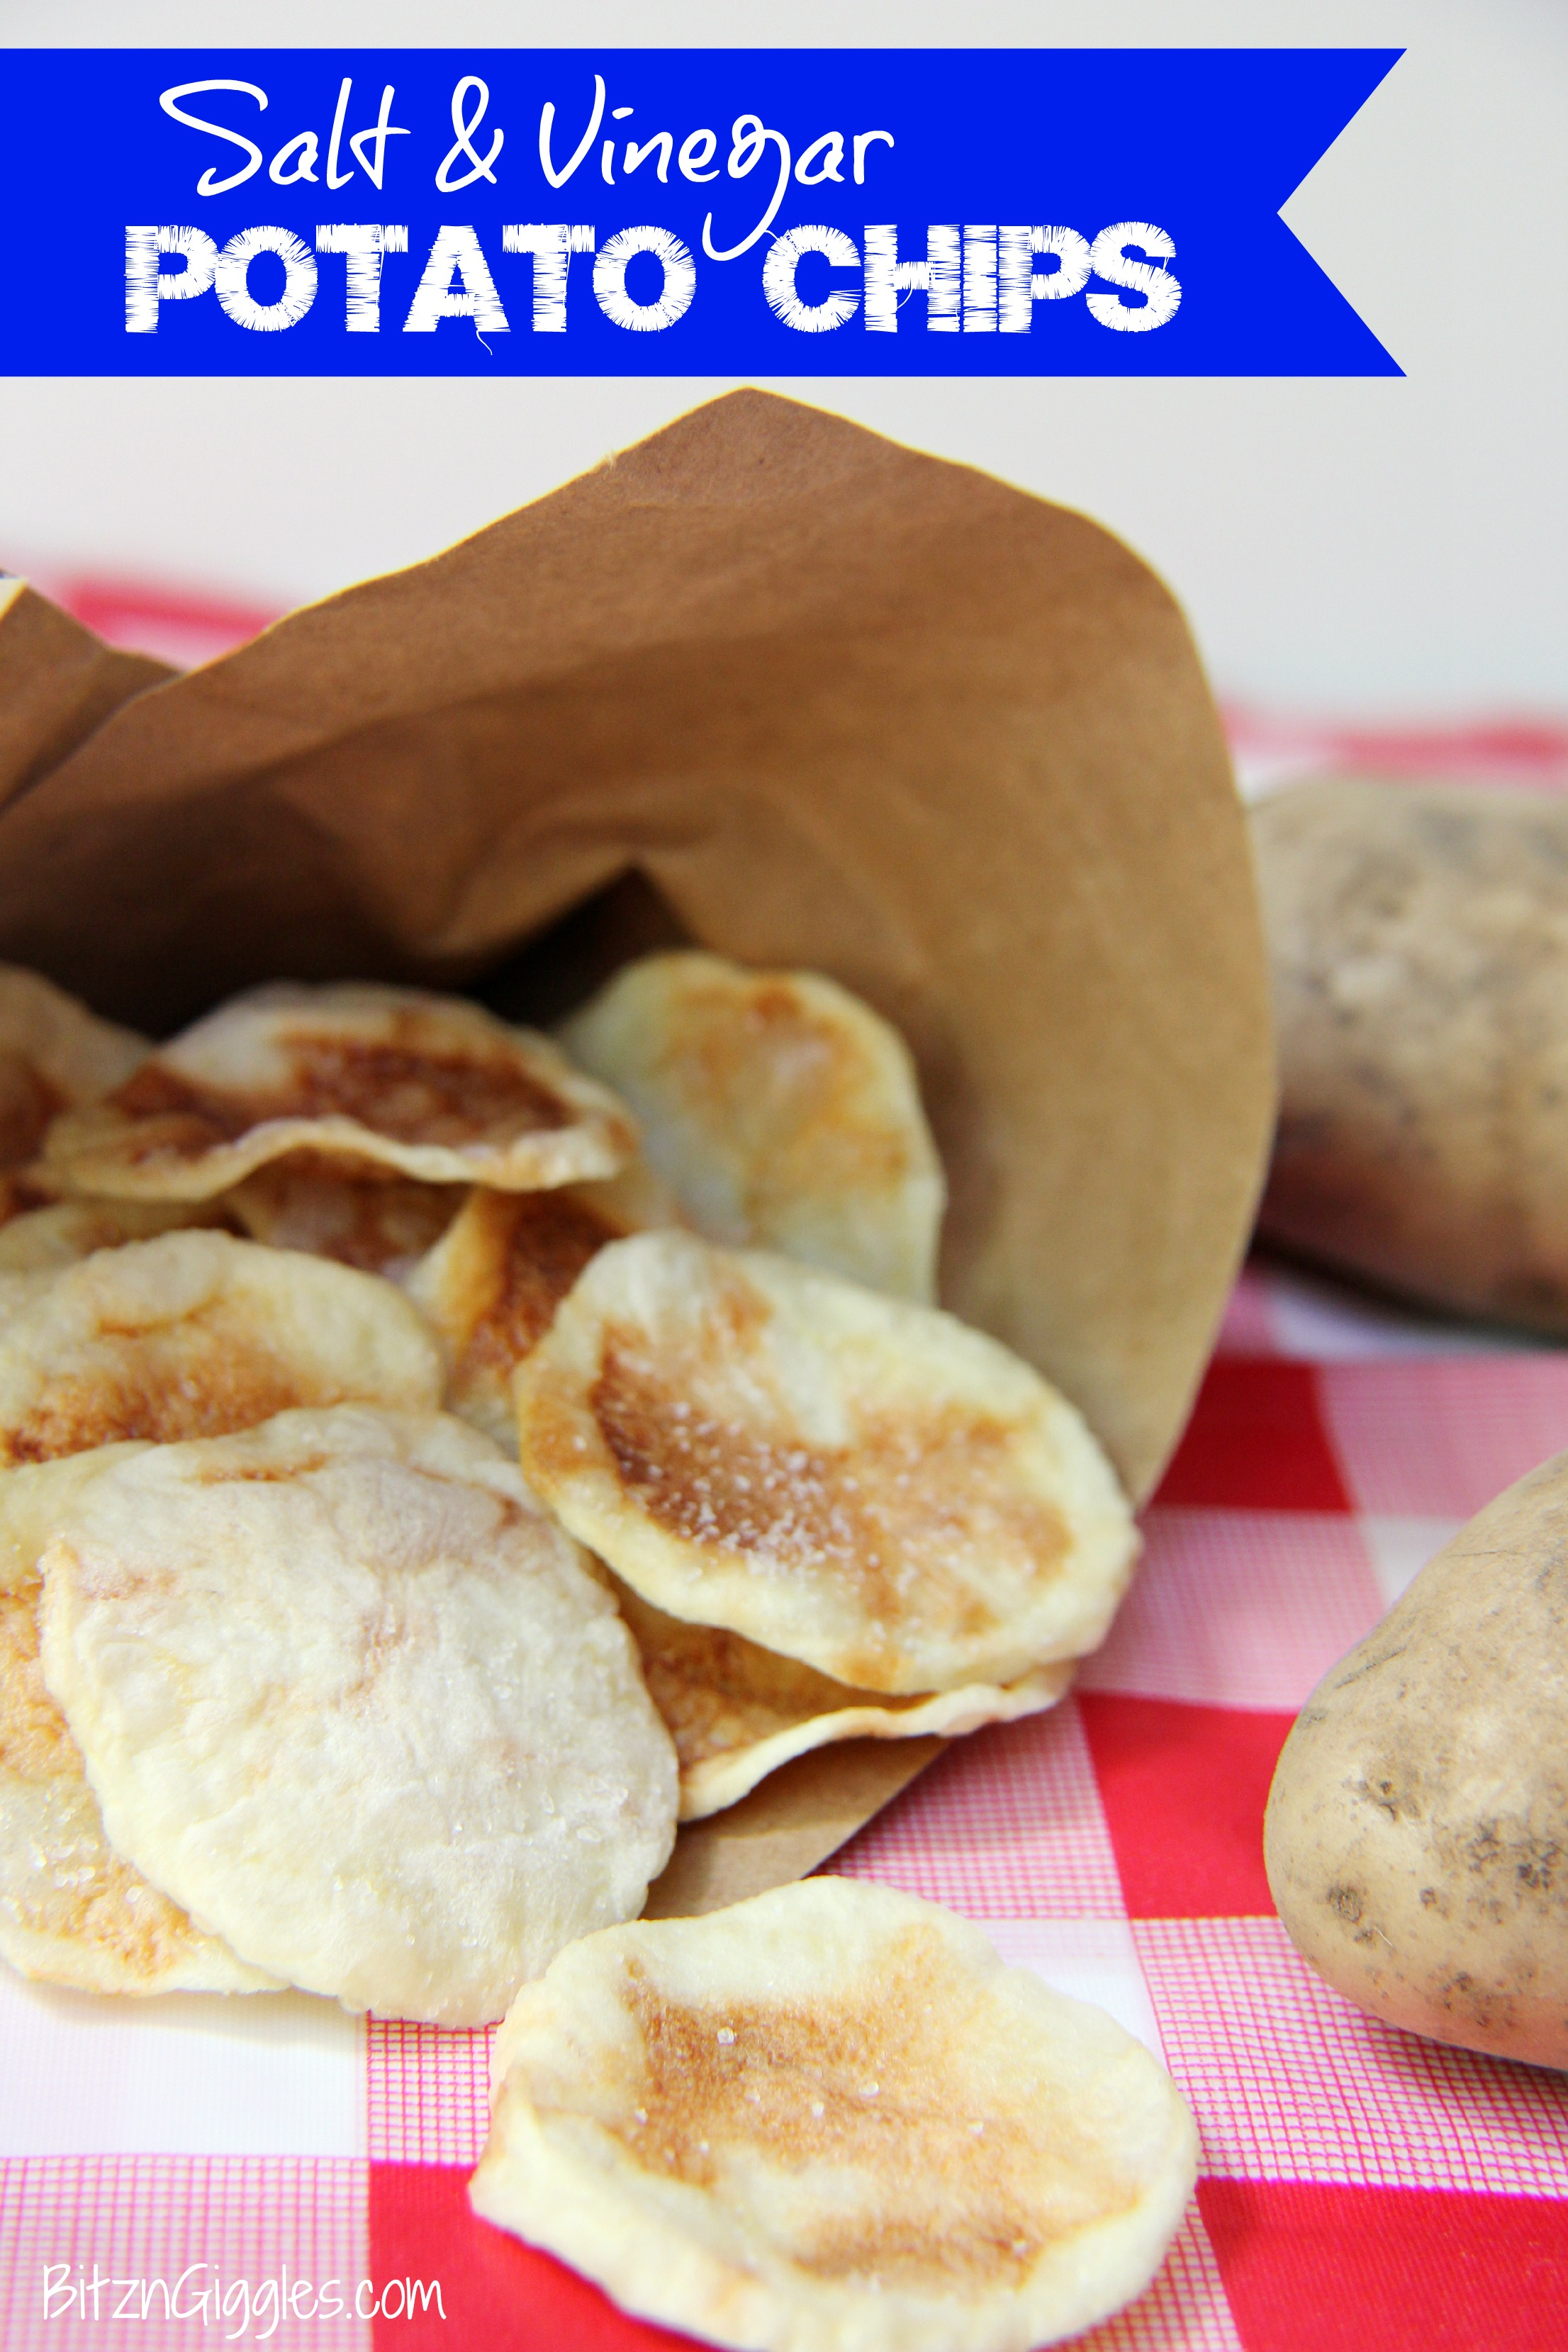 Salt and Vinegar Potato Chips - Bitz & Giggles